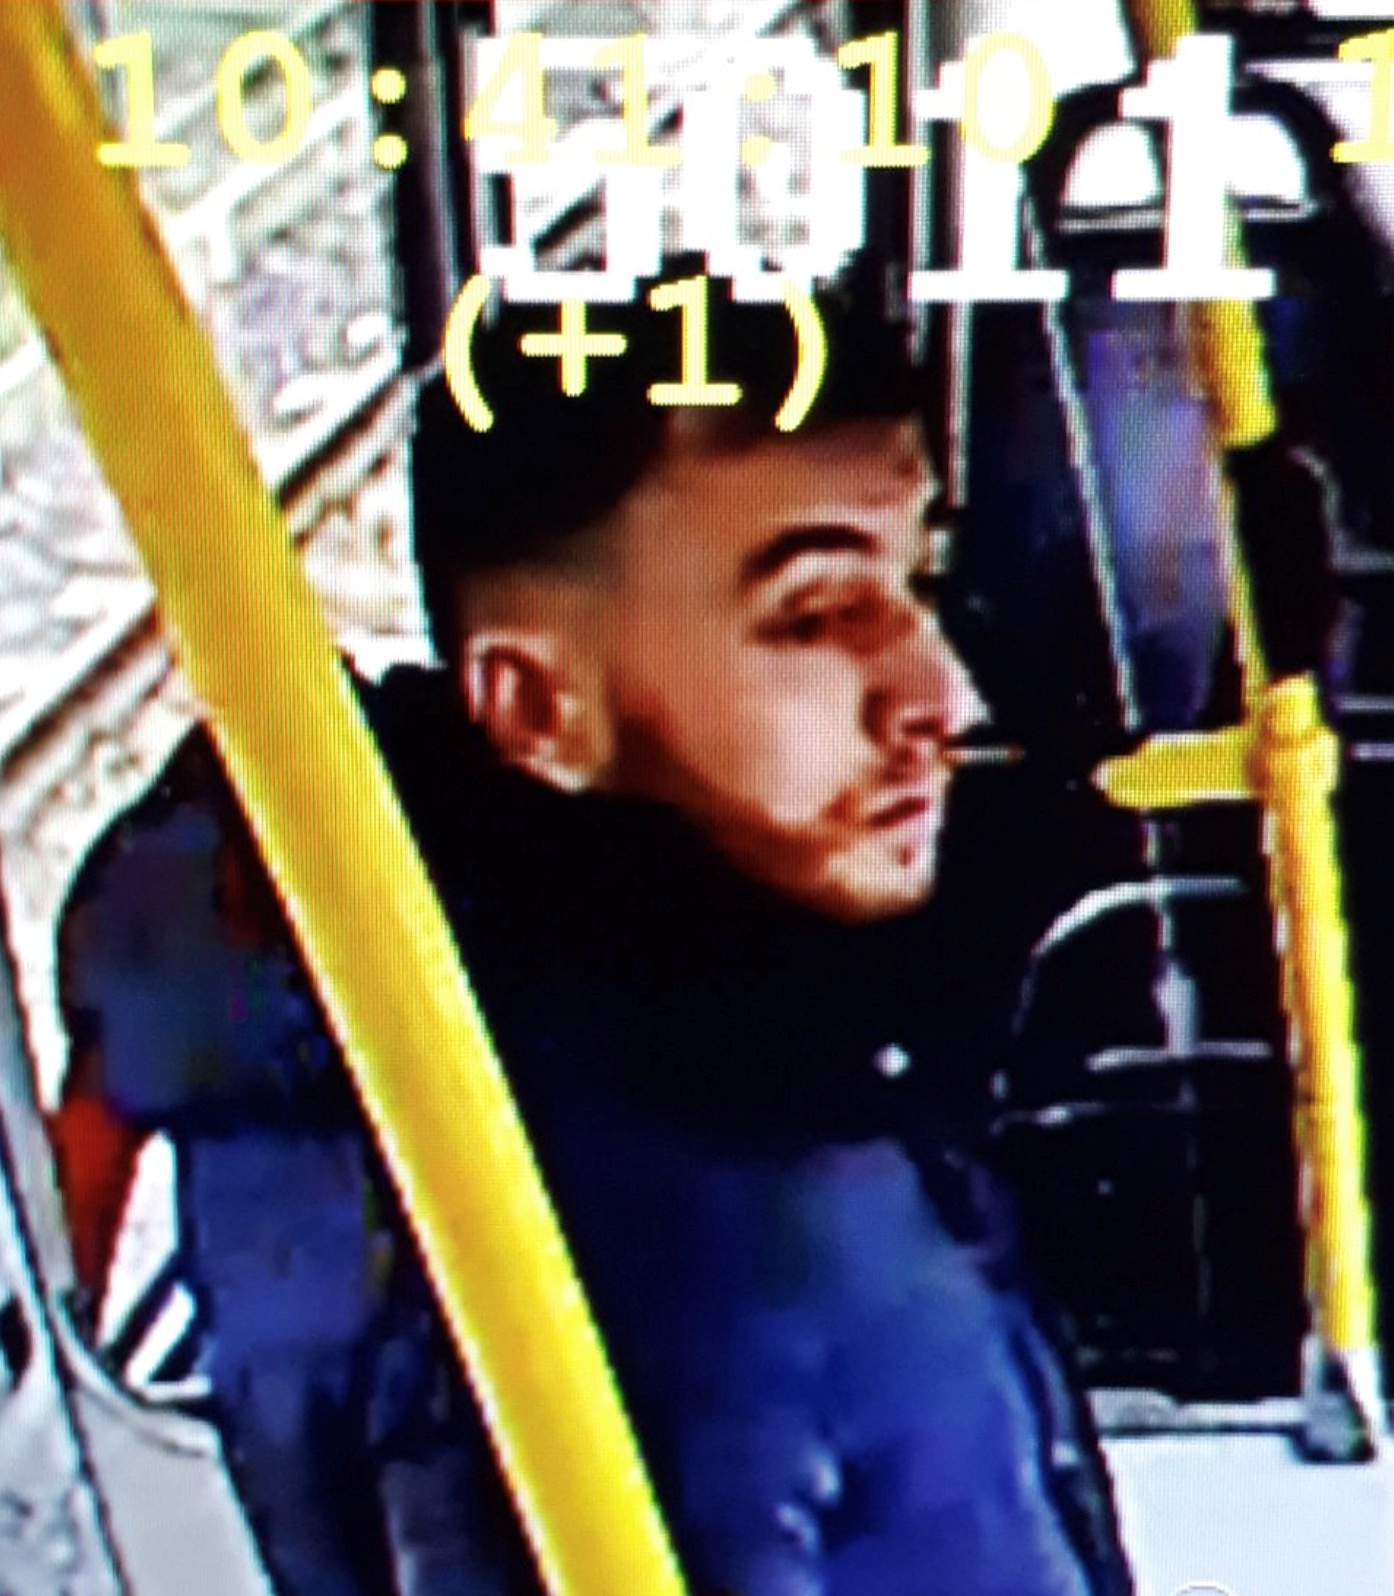 Handout still image taken from CCTV footage shows a man who has been named as a suspect in Monday's shooting in Utrecht, Netherlands, in a still image from CCTV footage released by the Utrecht Police on March 18, 2019 REUTERS/Utrecht Police/Handout via Reuters